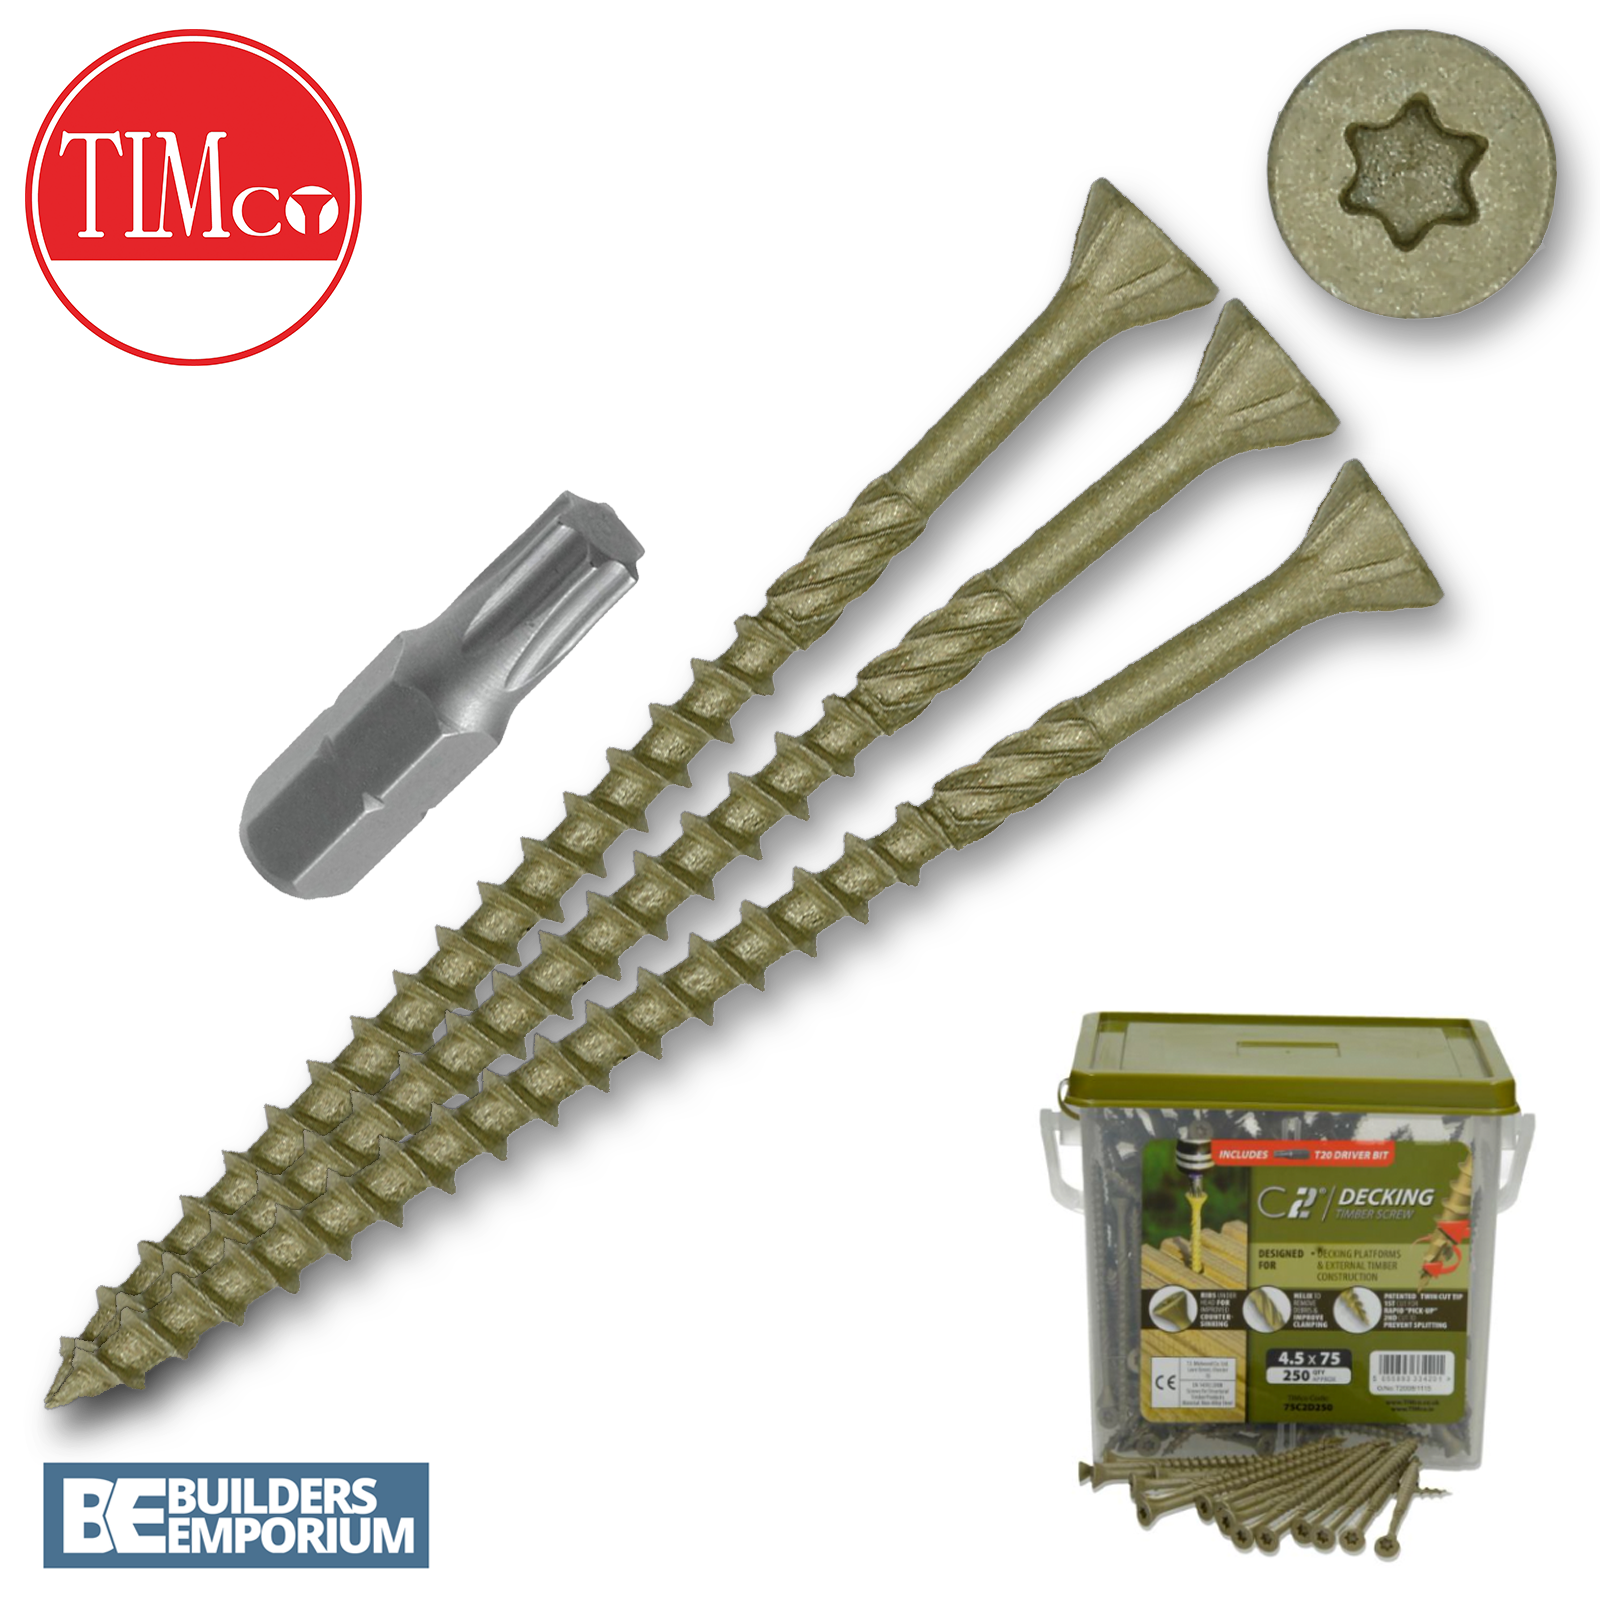 Details about TimCo Decking Screws Green Professional TRADE Quality ALL  SIZES